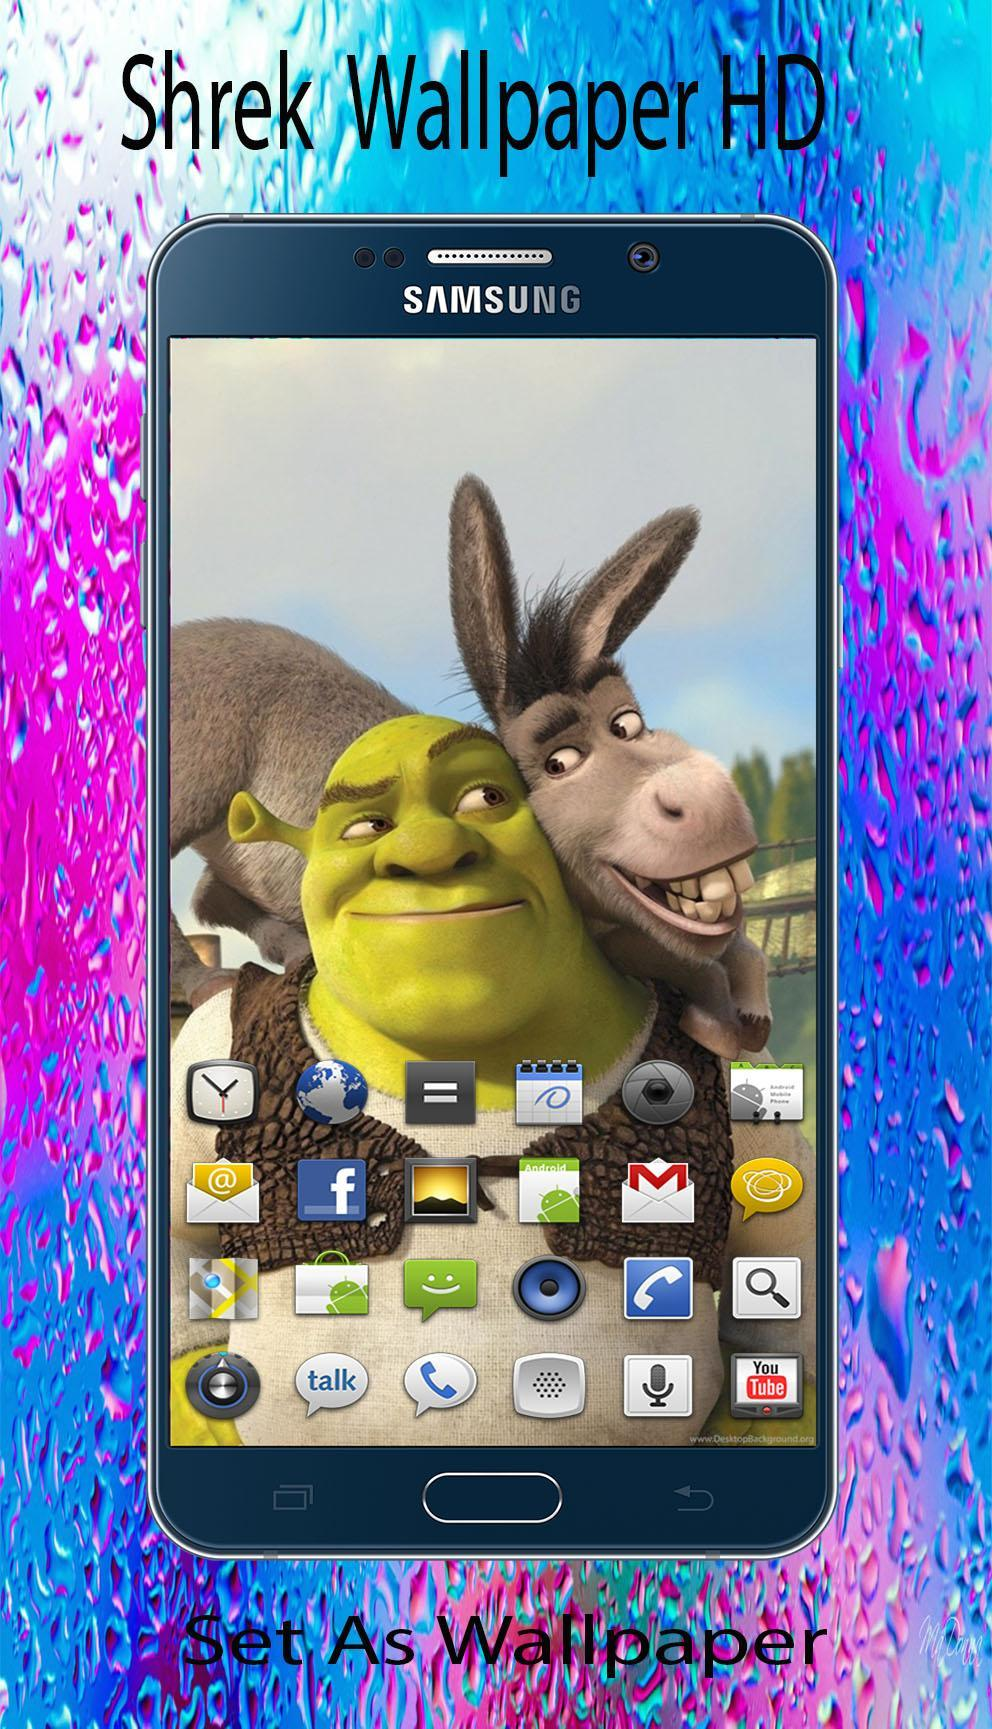 The Best Shrek Wallpaper Hd For Android Apk Download